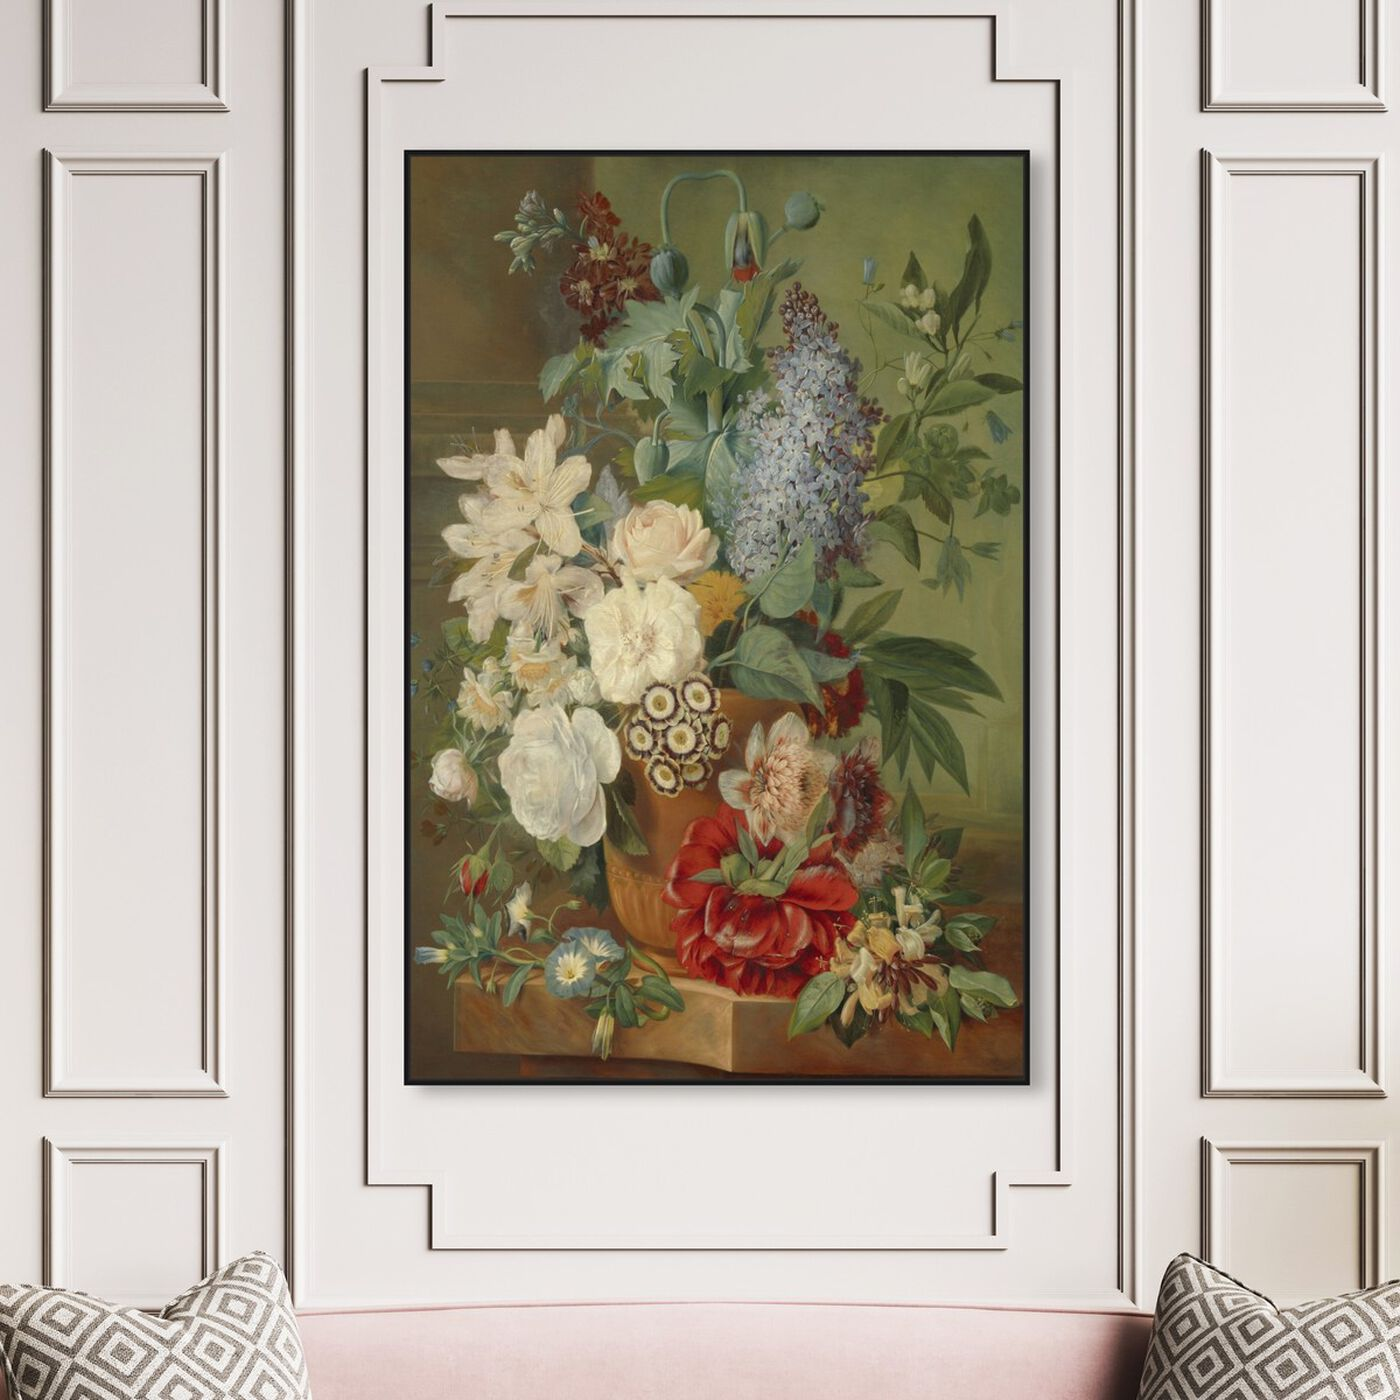 Hanging view of Flower Arrangement VIII - The Art Cabinet featuring classic and figurative and french décor art.